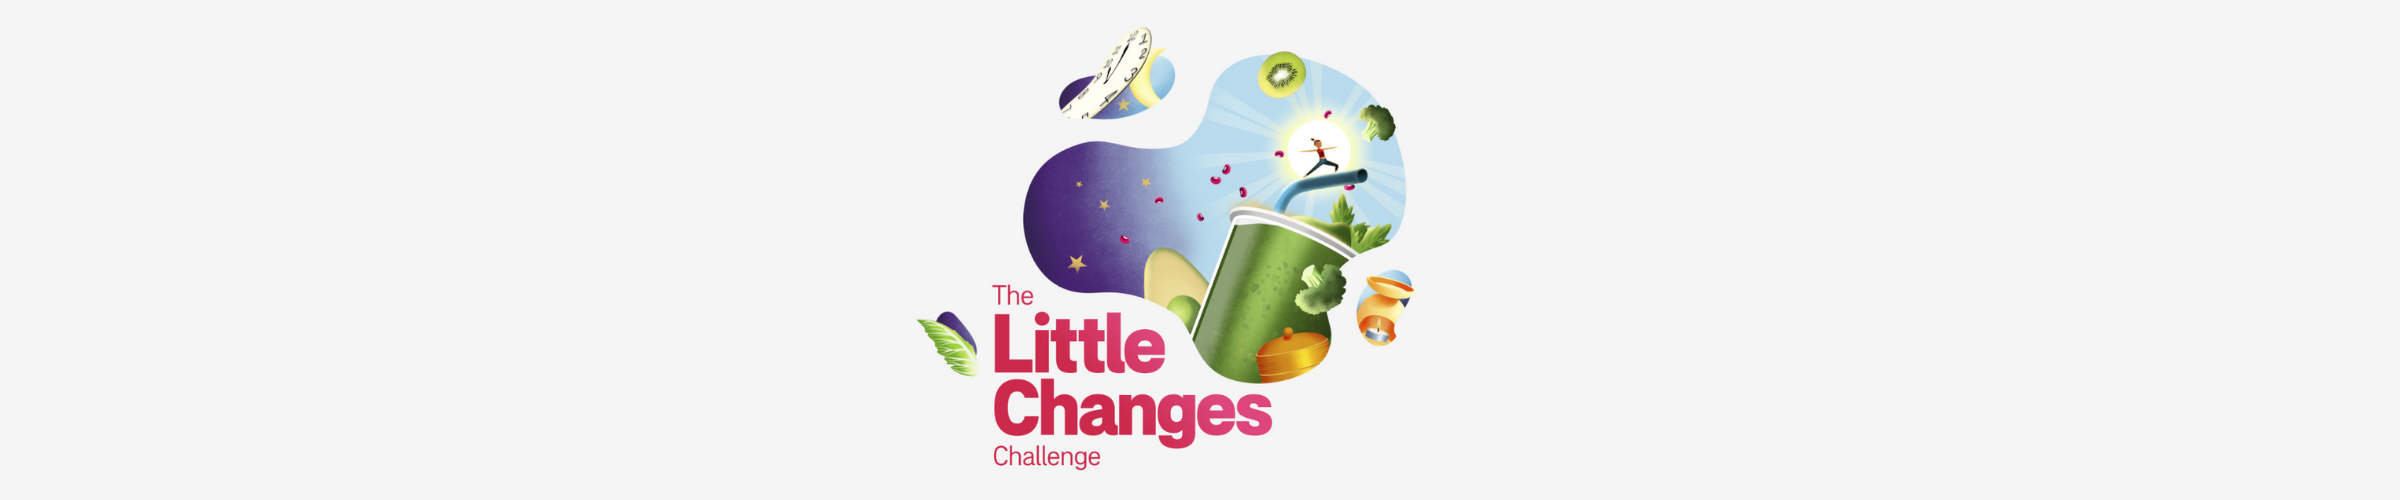 little changes challenge